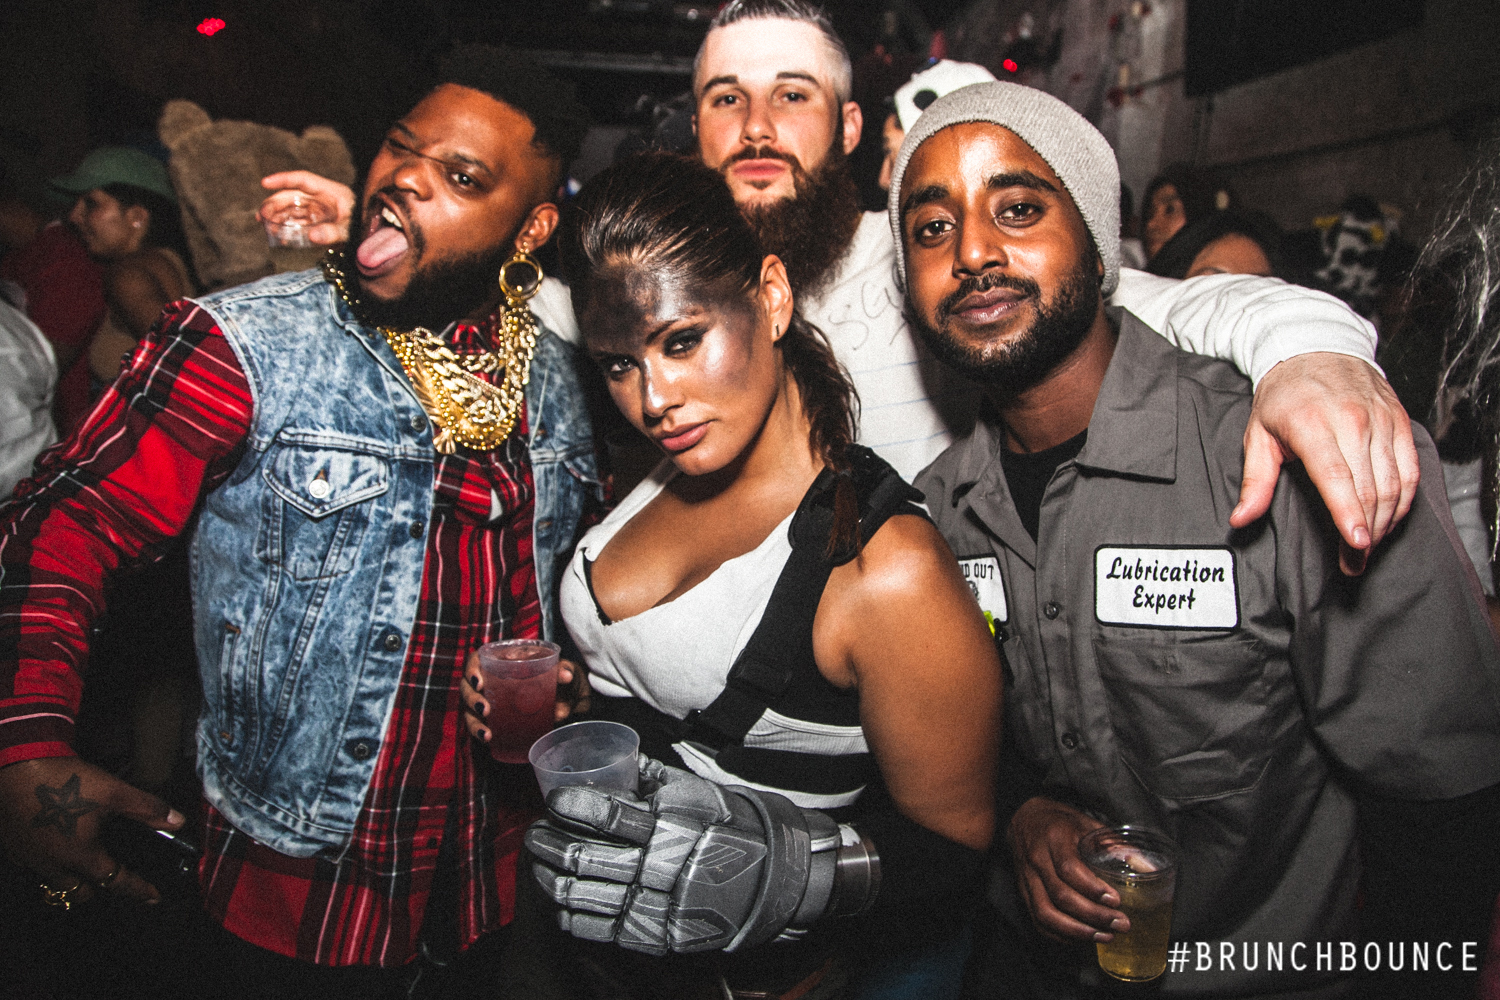 brunch-bounce-x-adidas-originals-halloween-103115_22766282511_o.jpg